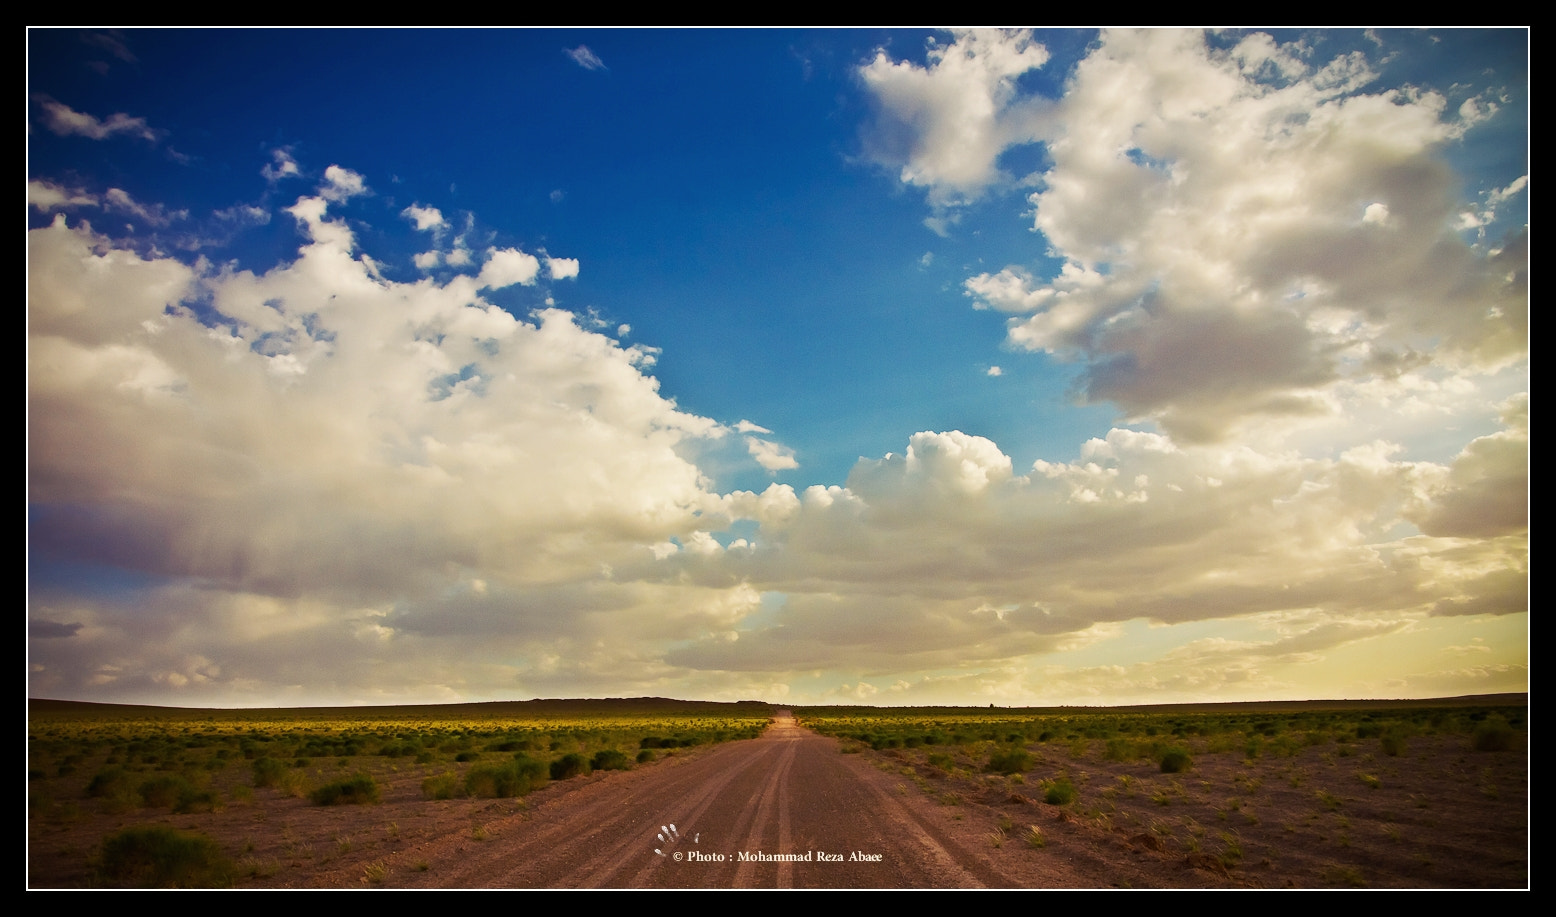 Photograph On the road again! by Mohammad Reza Abaee on 500px